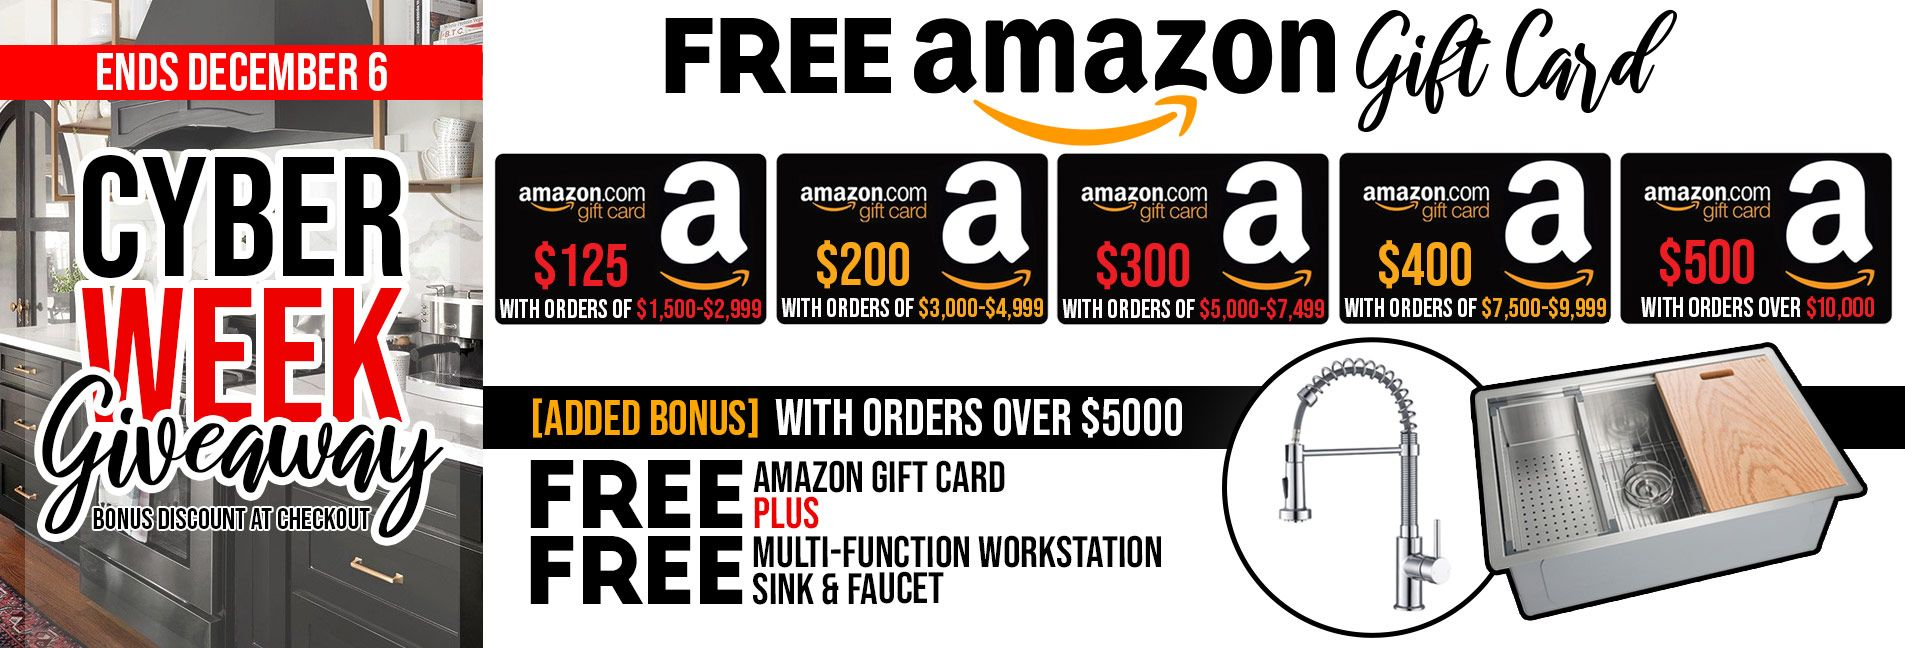 Cyber Week FREE Amazon Gift Card